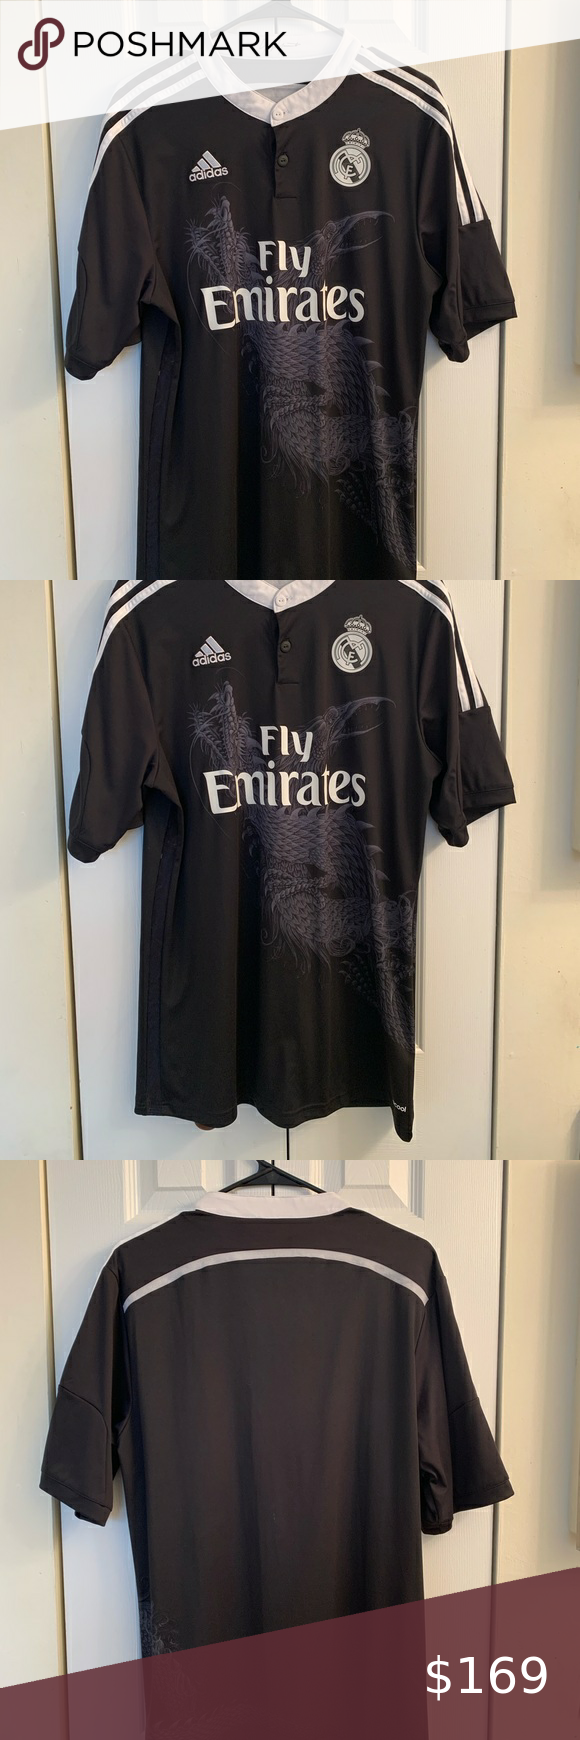 Fly Emirates Adidas X Yy Real Madrid Black Dragon Pre Owed Adidas Real Madrid X Yohji Yamamoto Third Jersey Adult Size Large Gently Worn In Great Condition I In 2020